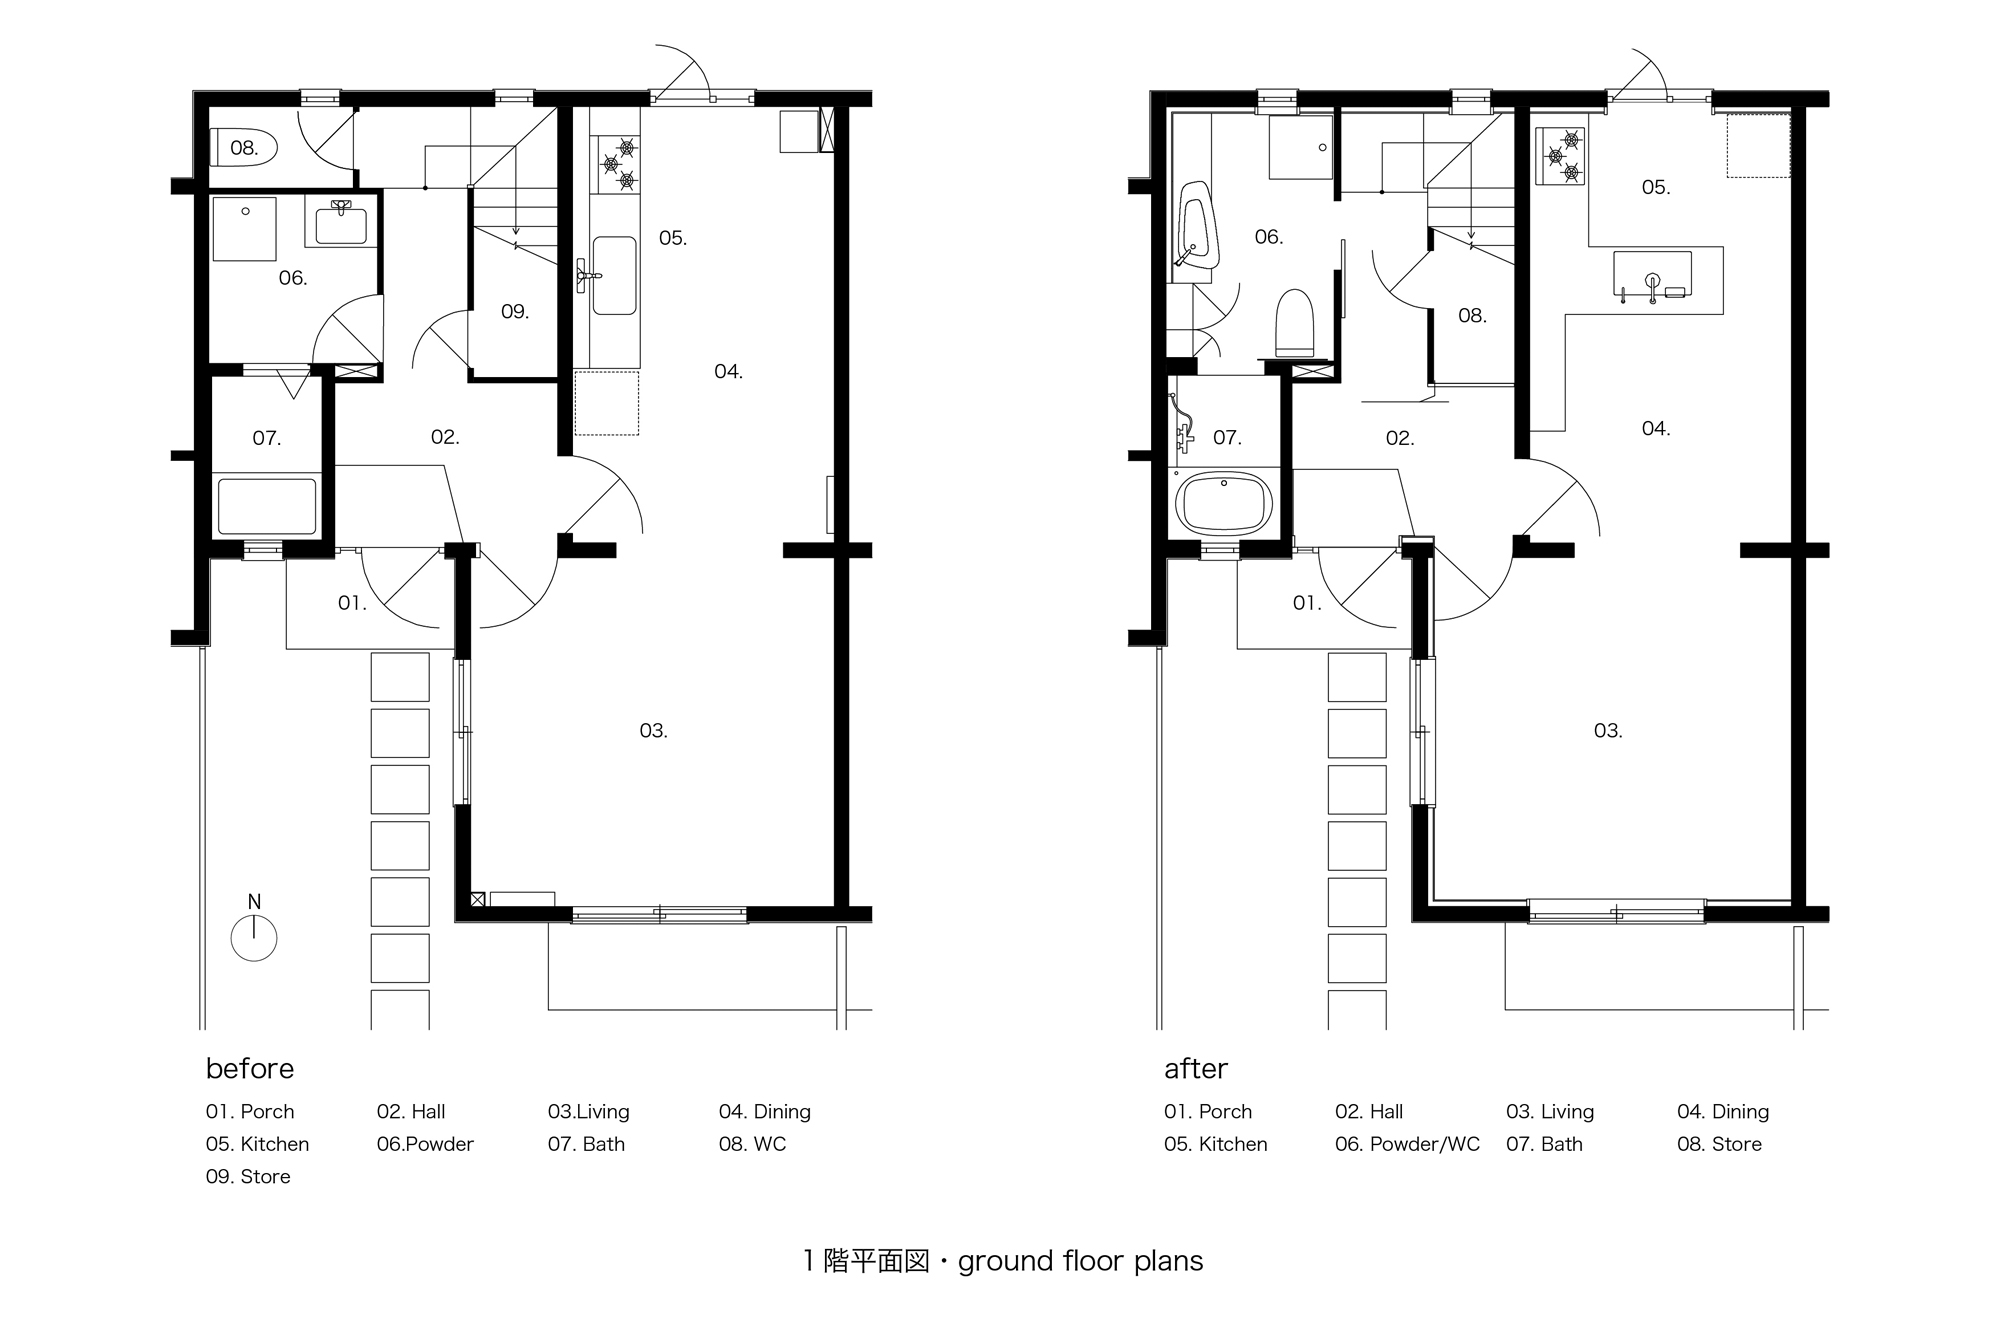 parents house plan_G